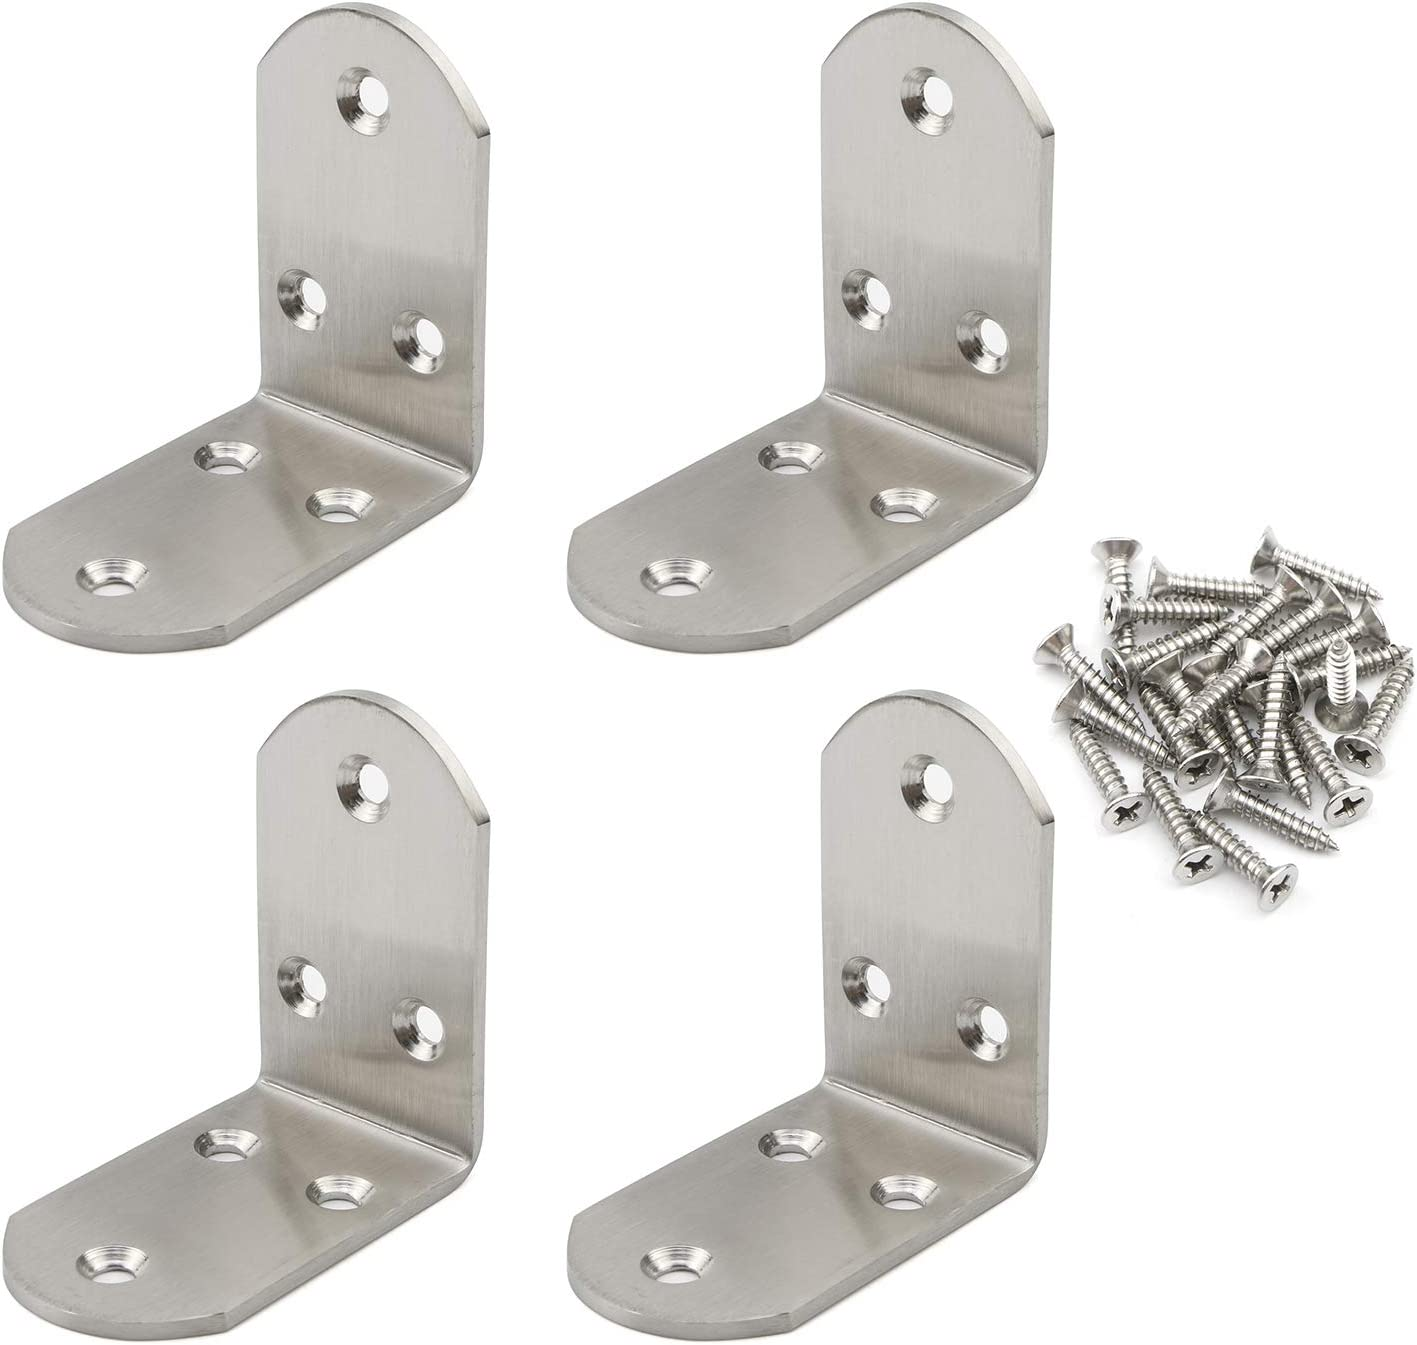 Pxyelec Stainless Steel 3mm Thicker Brace Corner Steel Joint Right Angle Bracket Fastener, Corner Brace, Wooden Furniture & Fixture Protector for Wood, 65mm x 65mm / 2.56 inch x 2.56 inch, Pack of 4